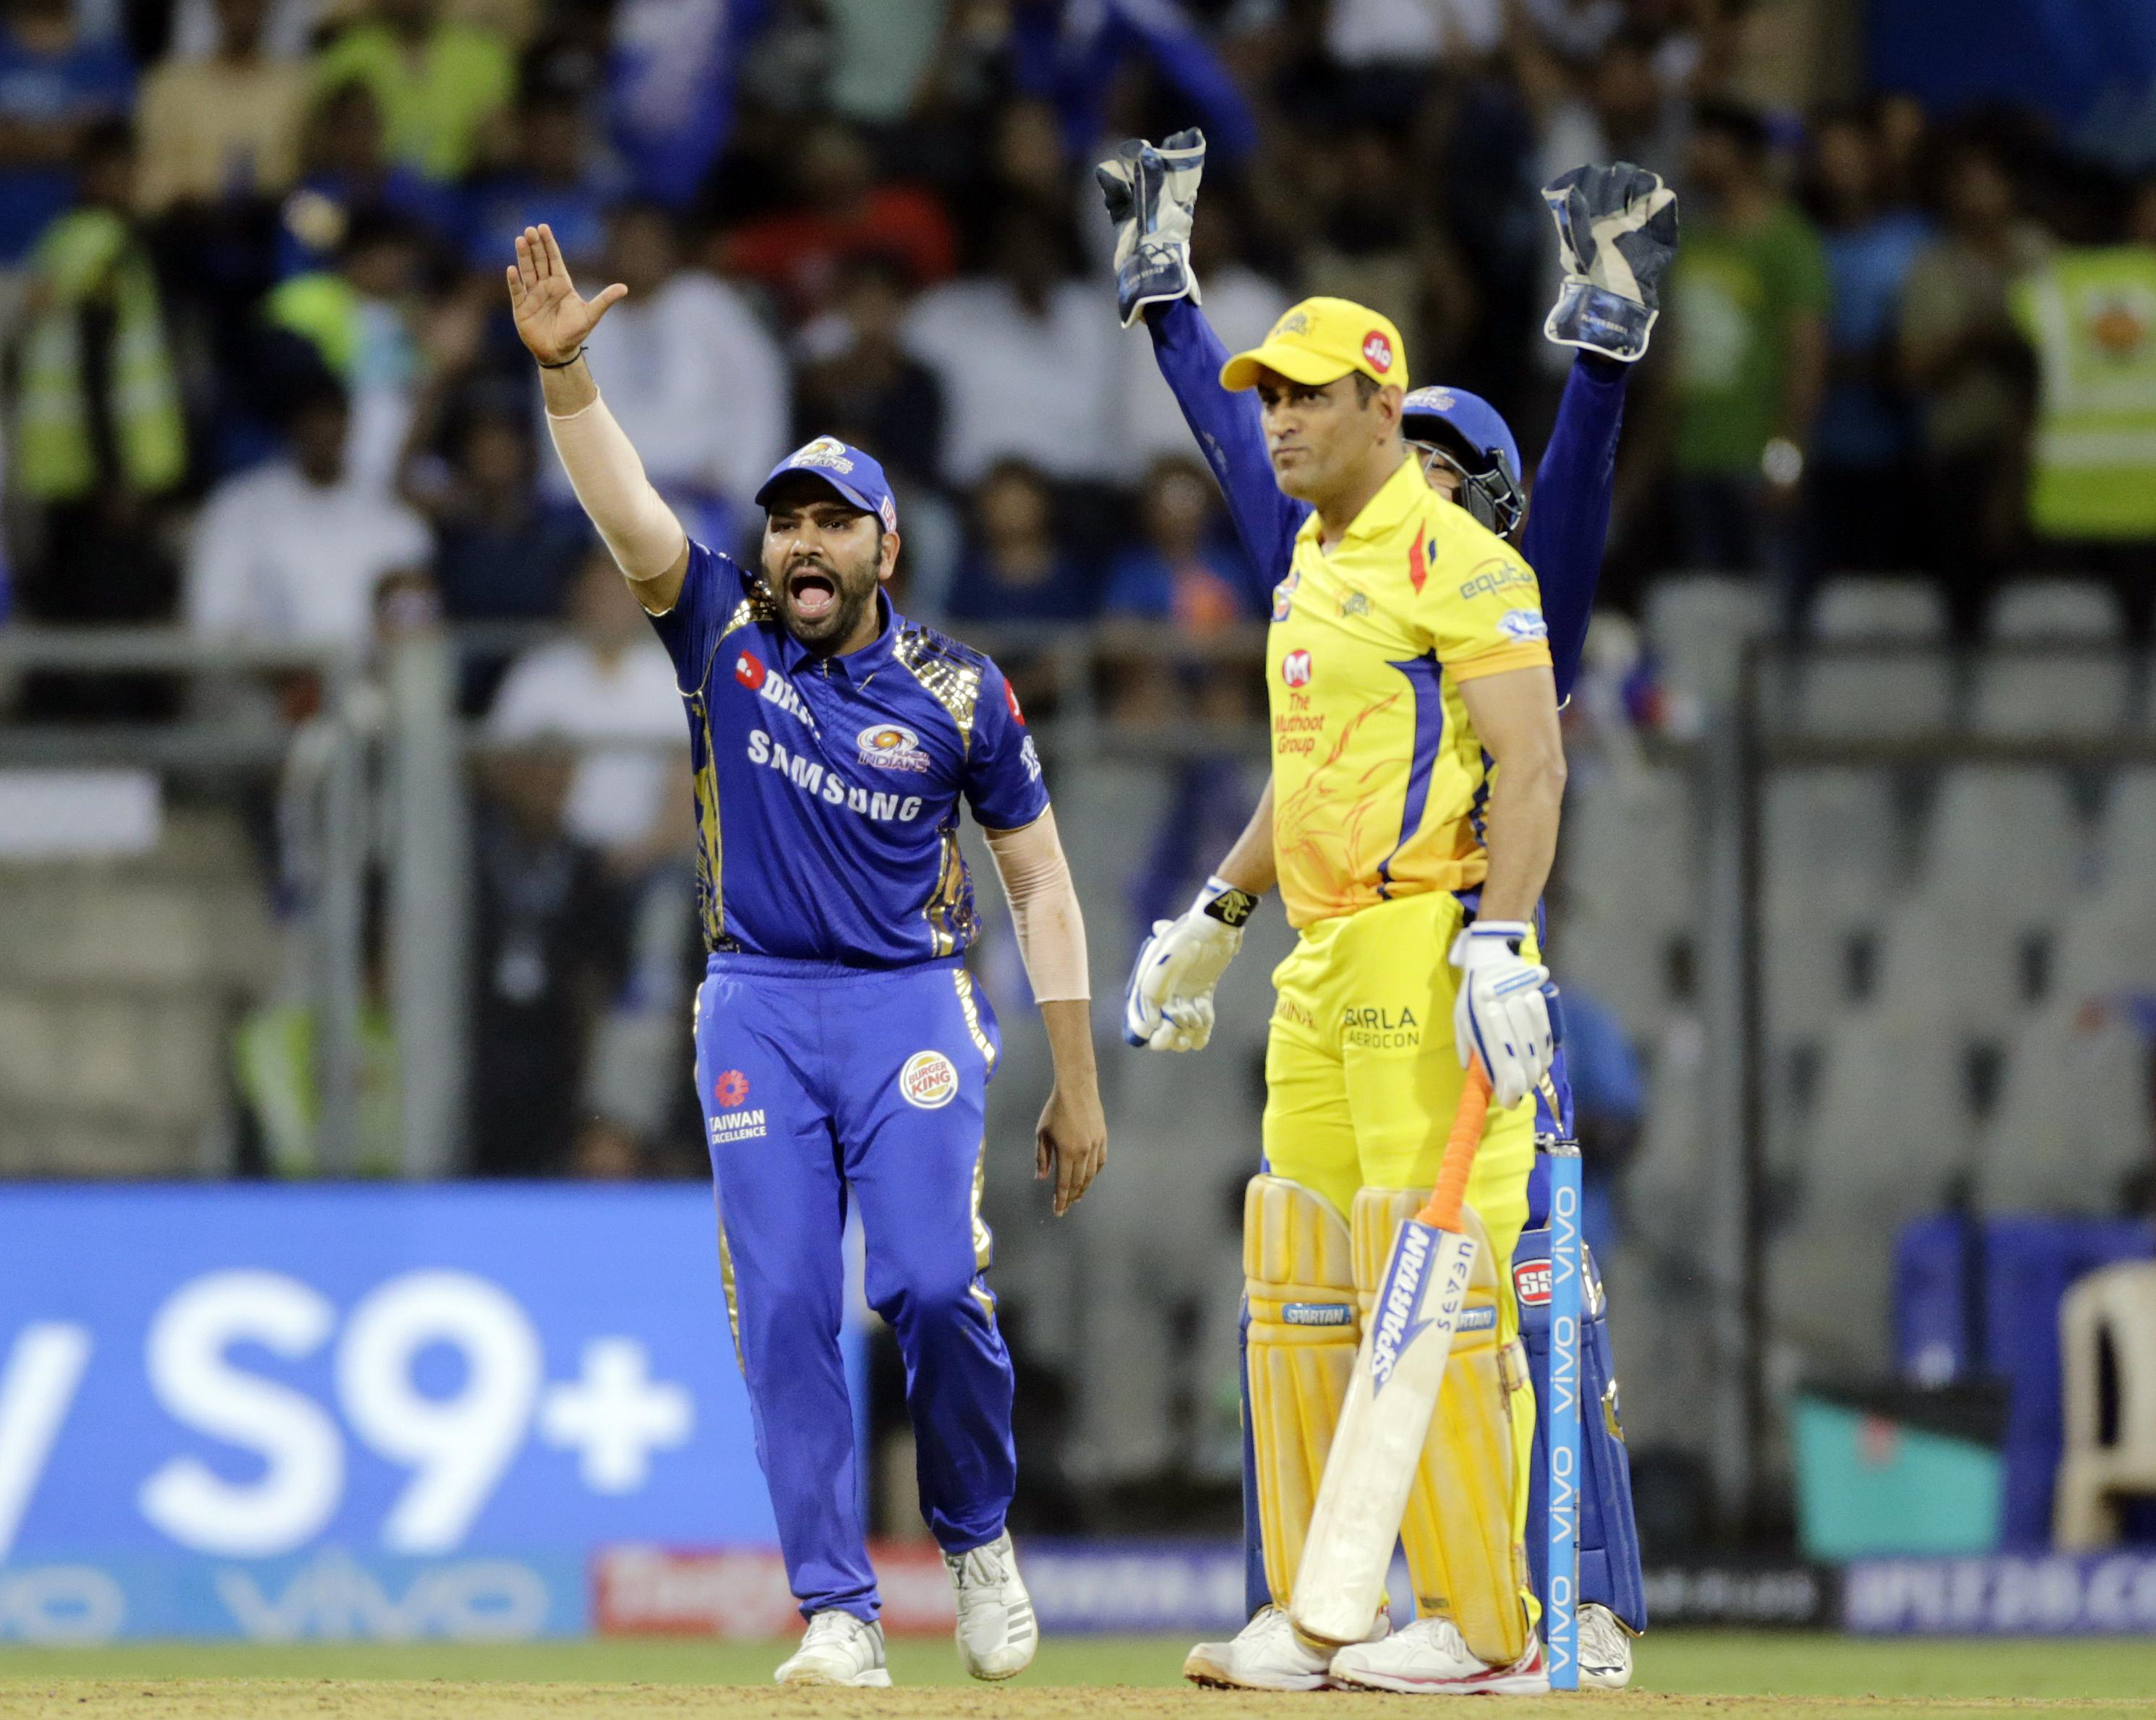 Chennai beat Mumbai in a thrilling opening match of the tournament on Saturday